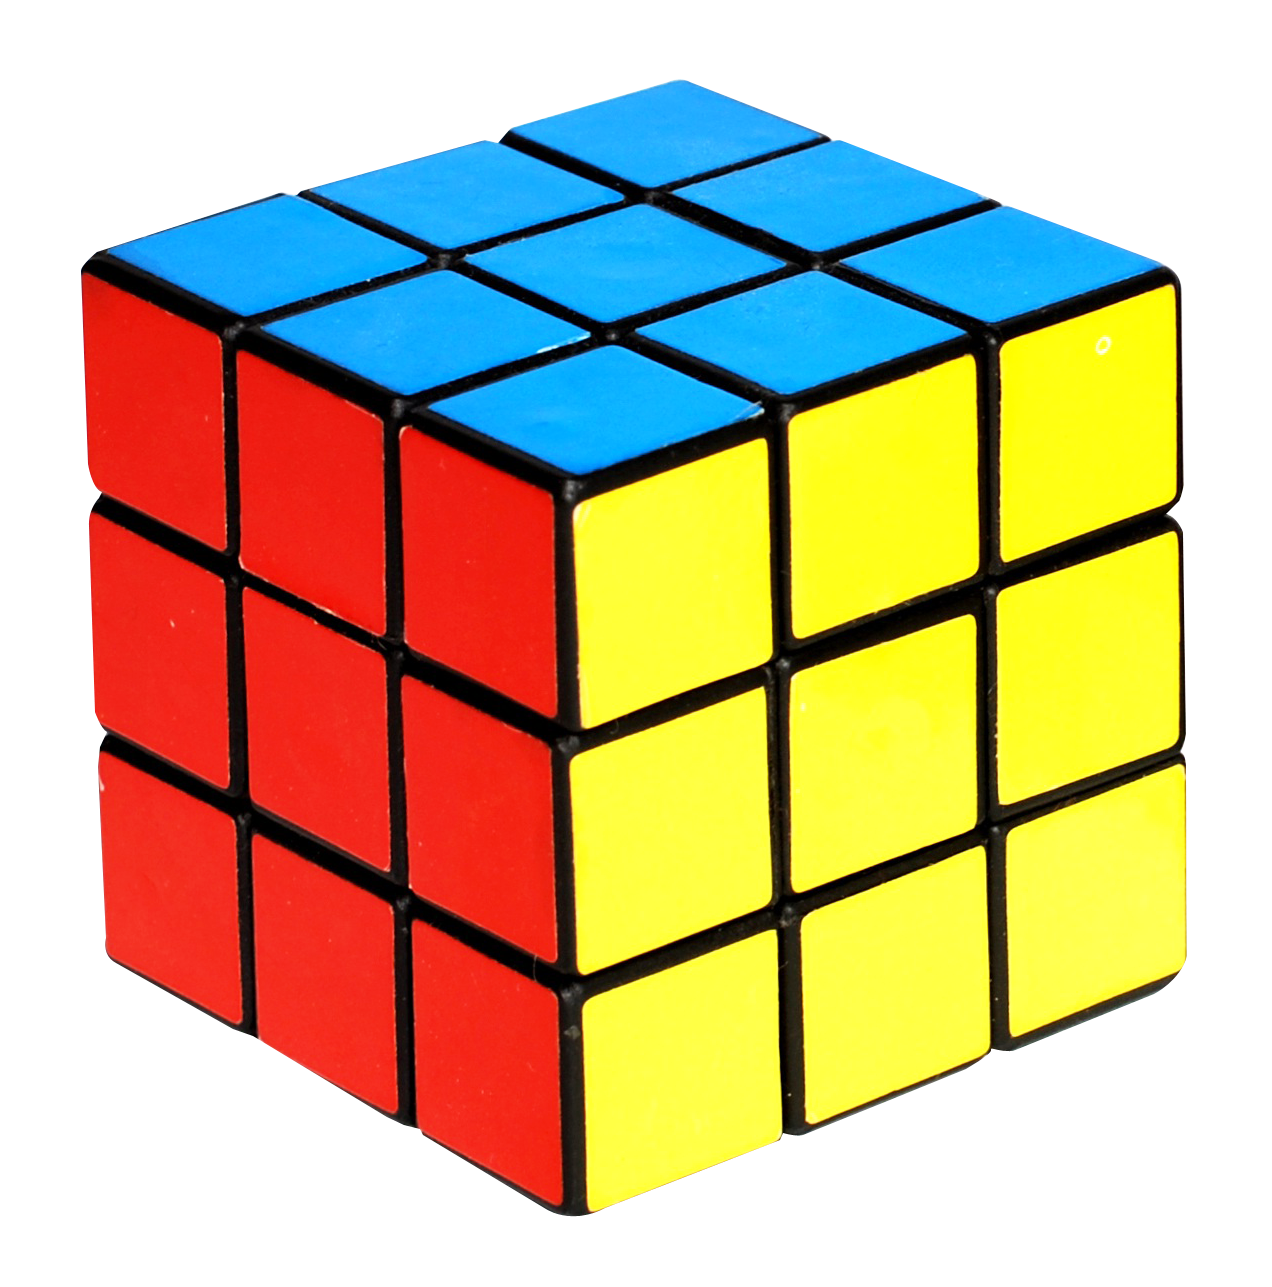 Cube Transparent Background PNG Image